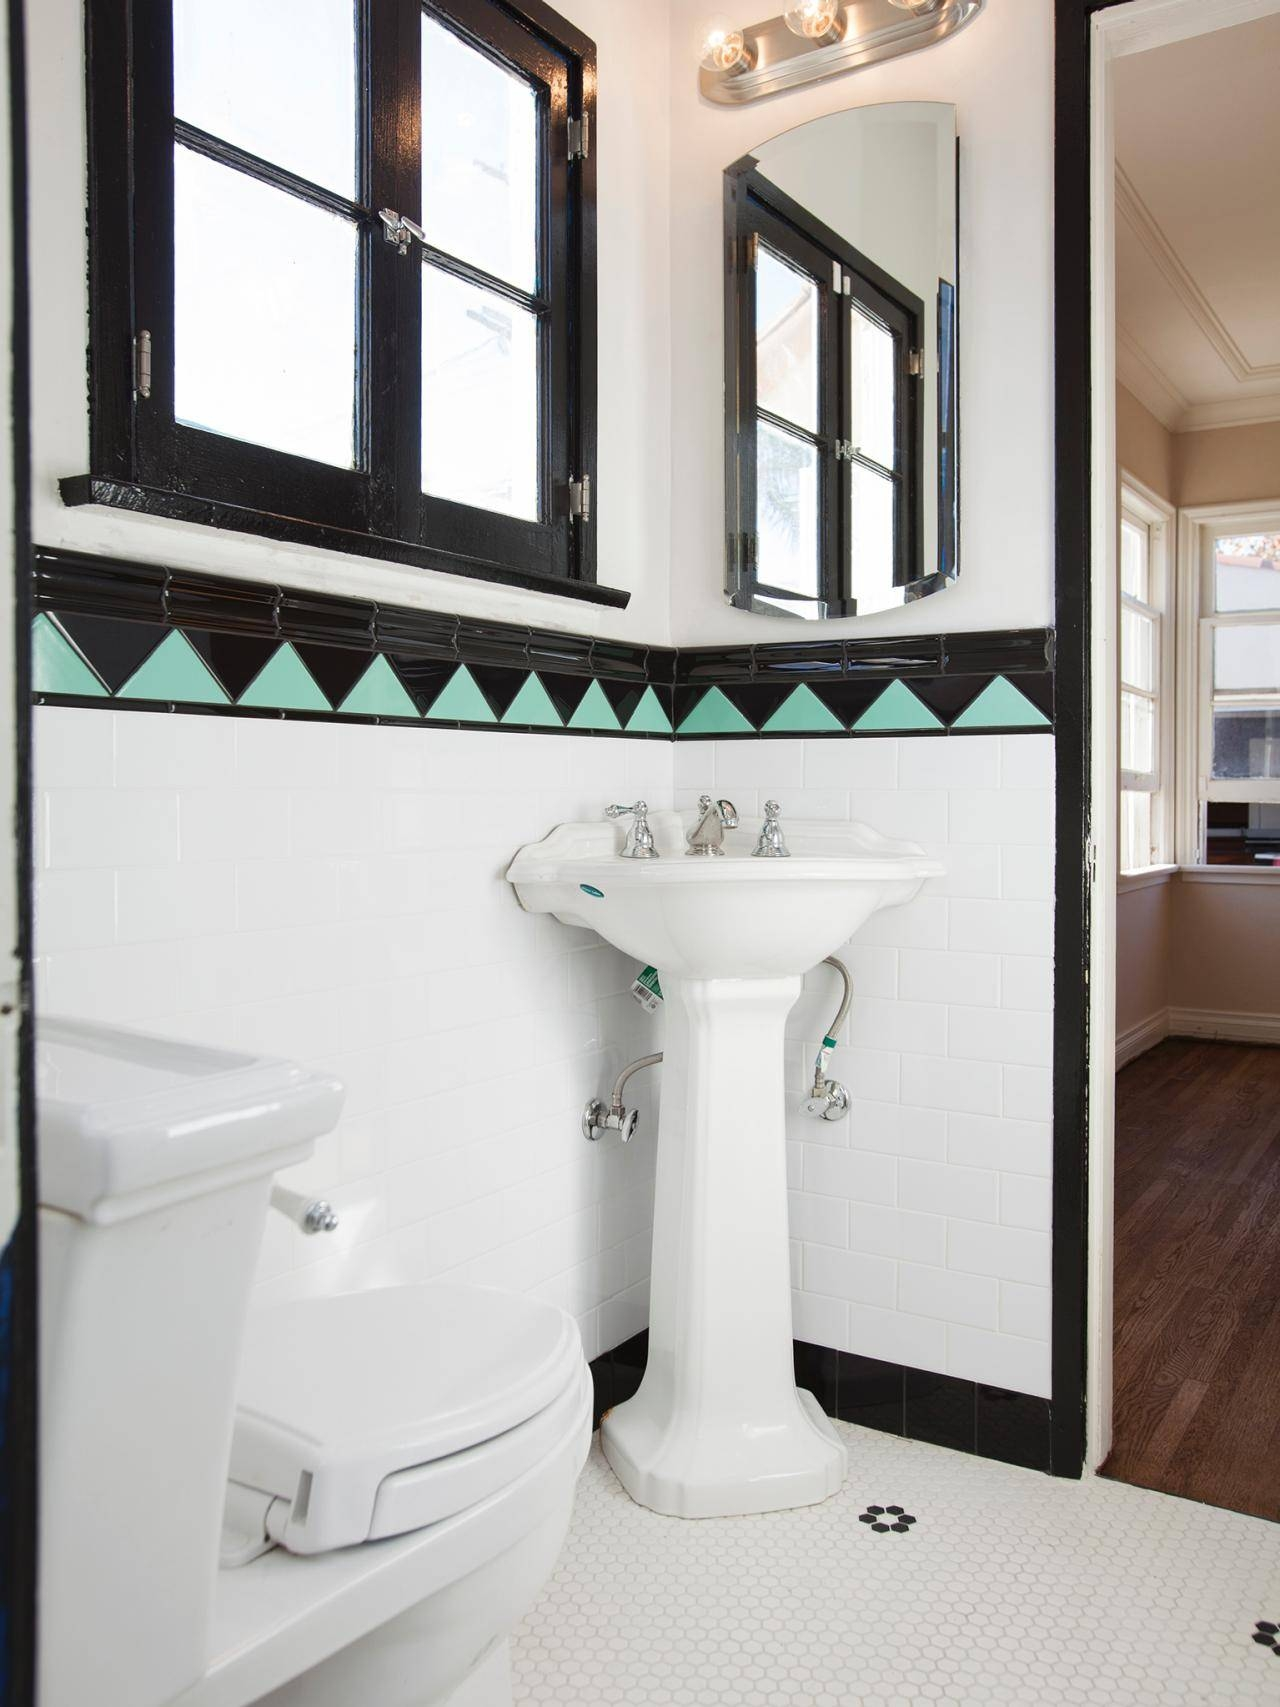 Art Deco Bathroom Mirrors | Home Throughout Deco Bathroom Mirrors (View 6 of 25)